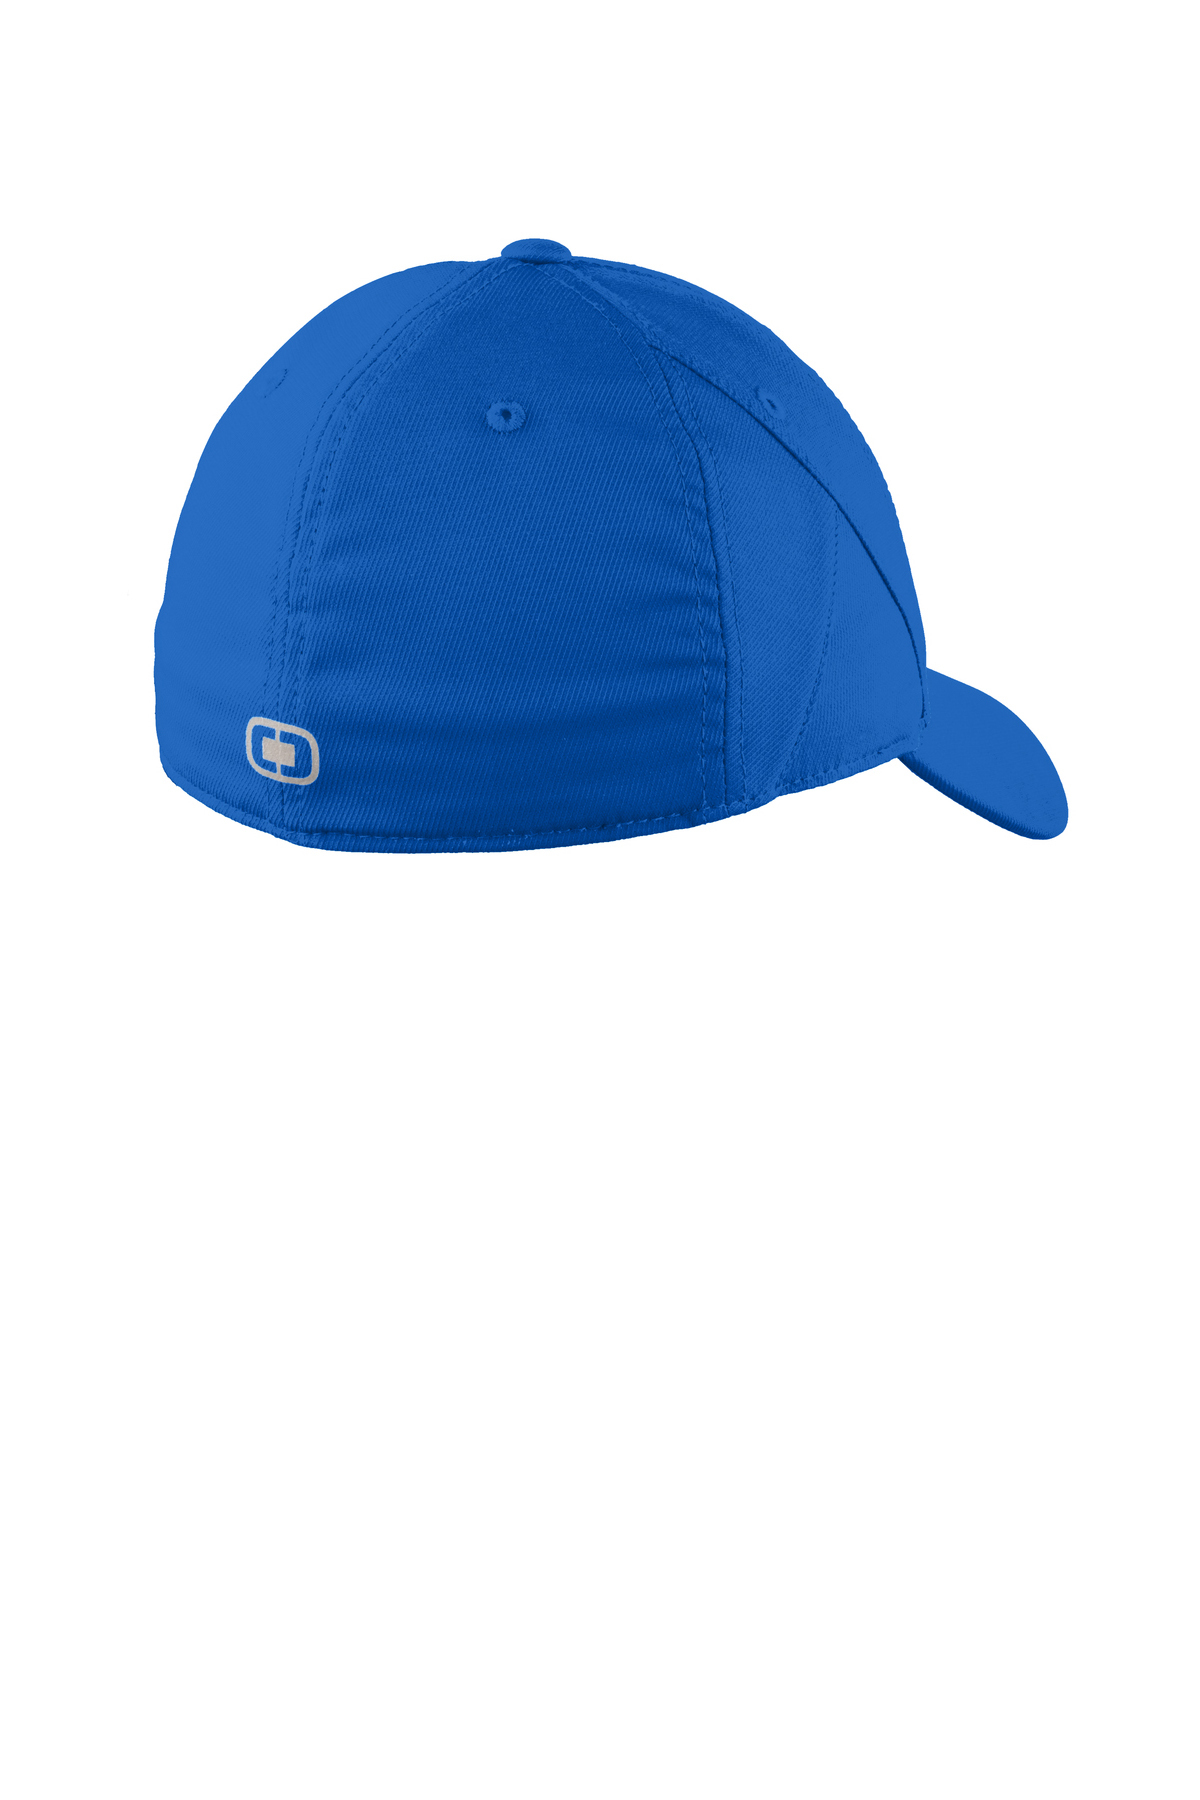 75bda0996cc ... OGIO® ENDURANCE Apex Cap. A maximum of 8 logos have been uploaded.  Please remove a logo from My Logos to continue